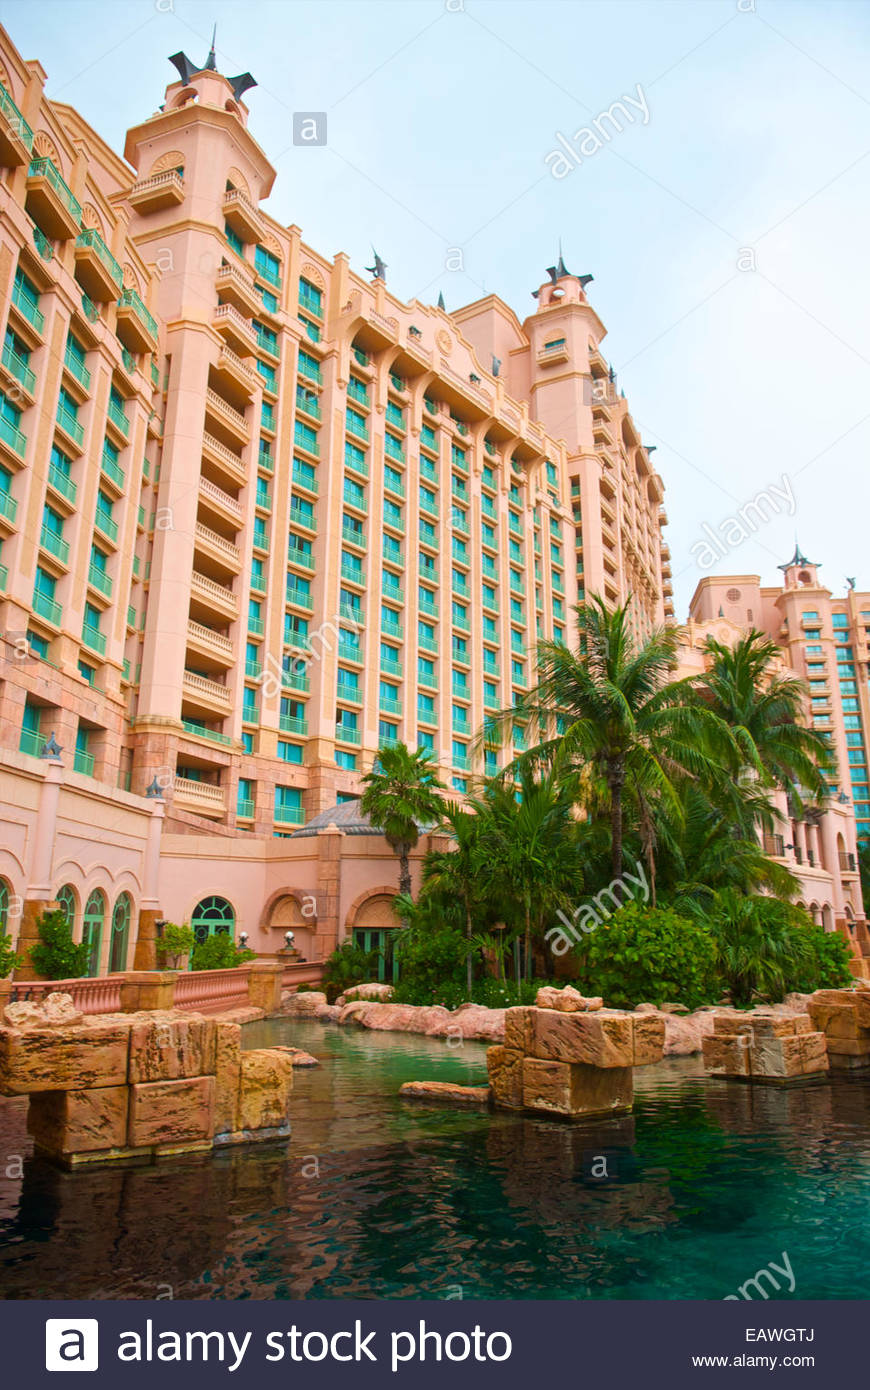 Atlantis Resort, a popular destination for families in the Bahamas. - Stock Image